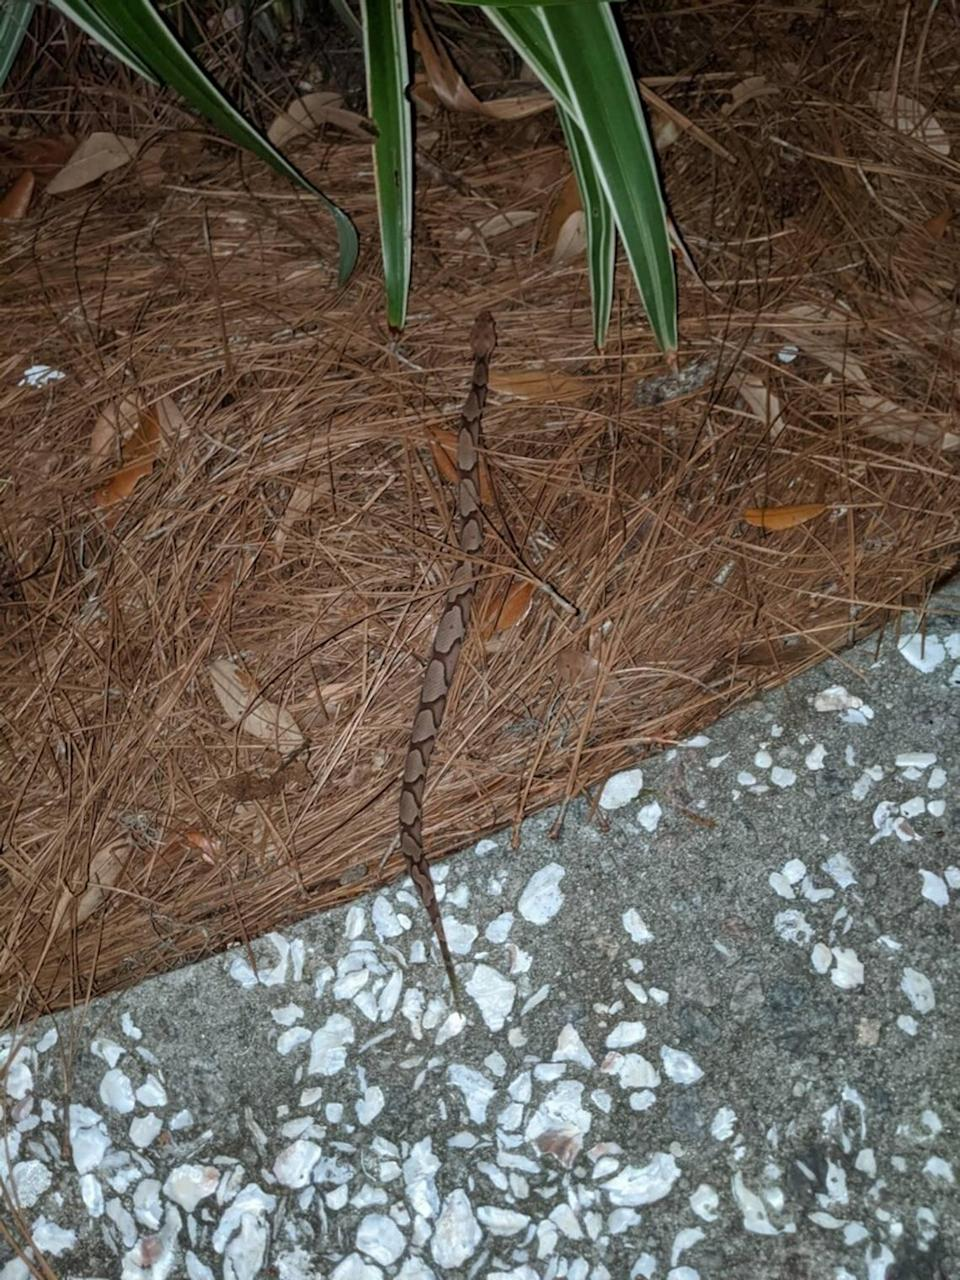 Susan Conlin O'Neil snapped this photo of the copperhead snake that bit her on May 5. She then went to the hospital for treatment.